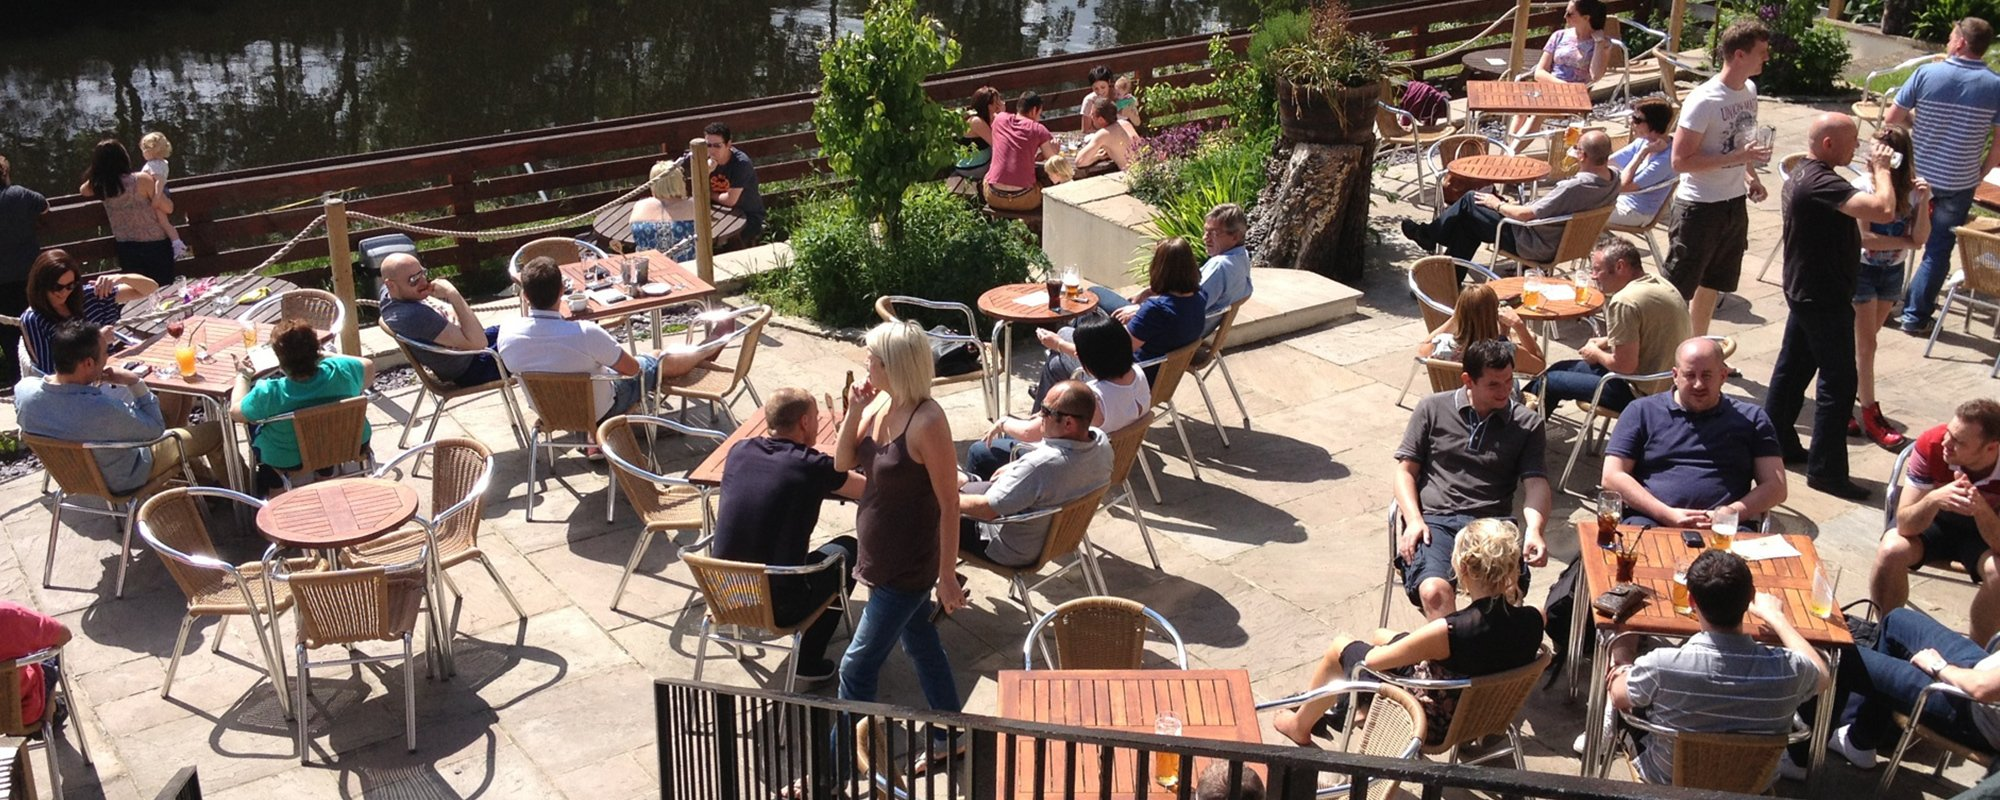 View of the customers enjoying at The Pear Tree Inn